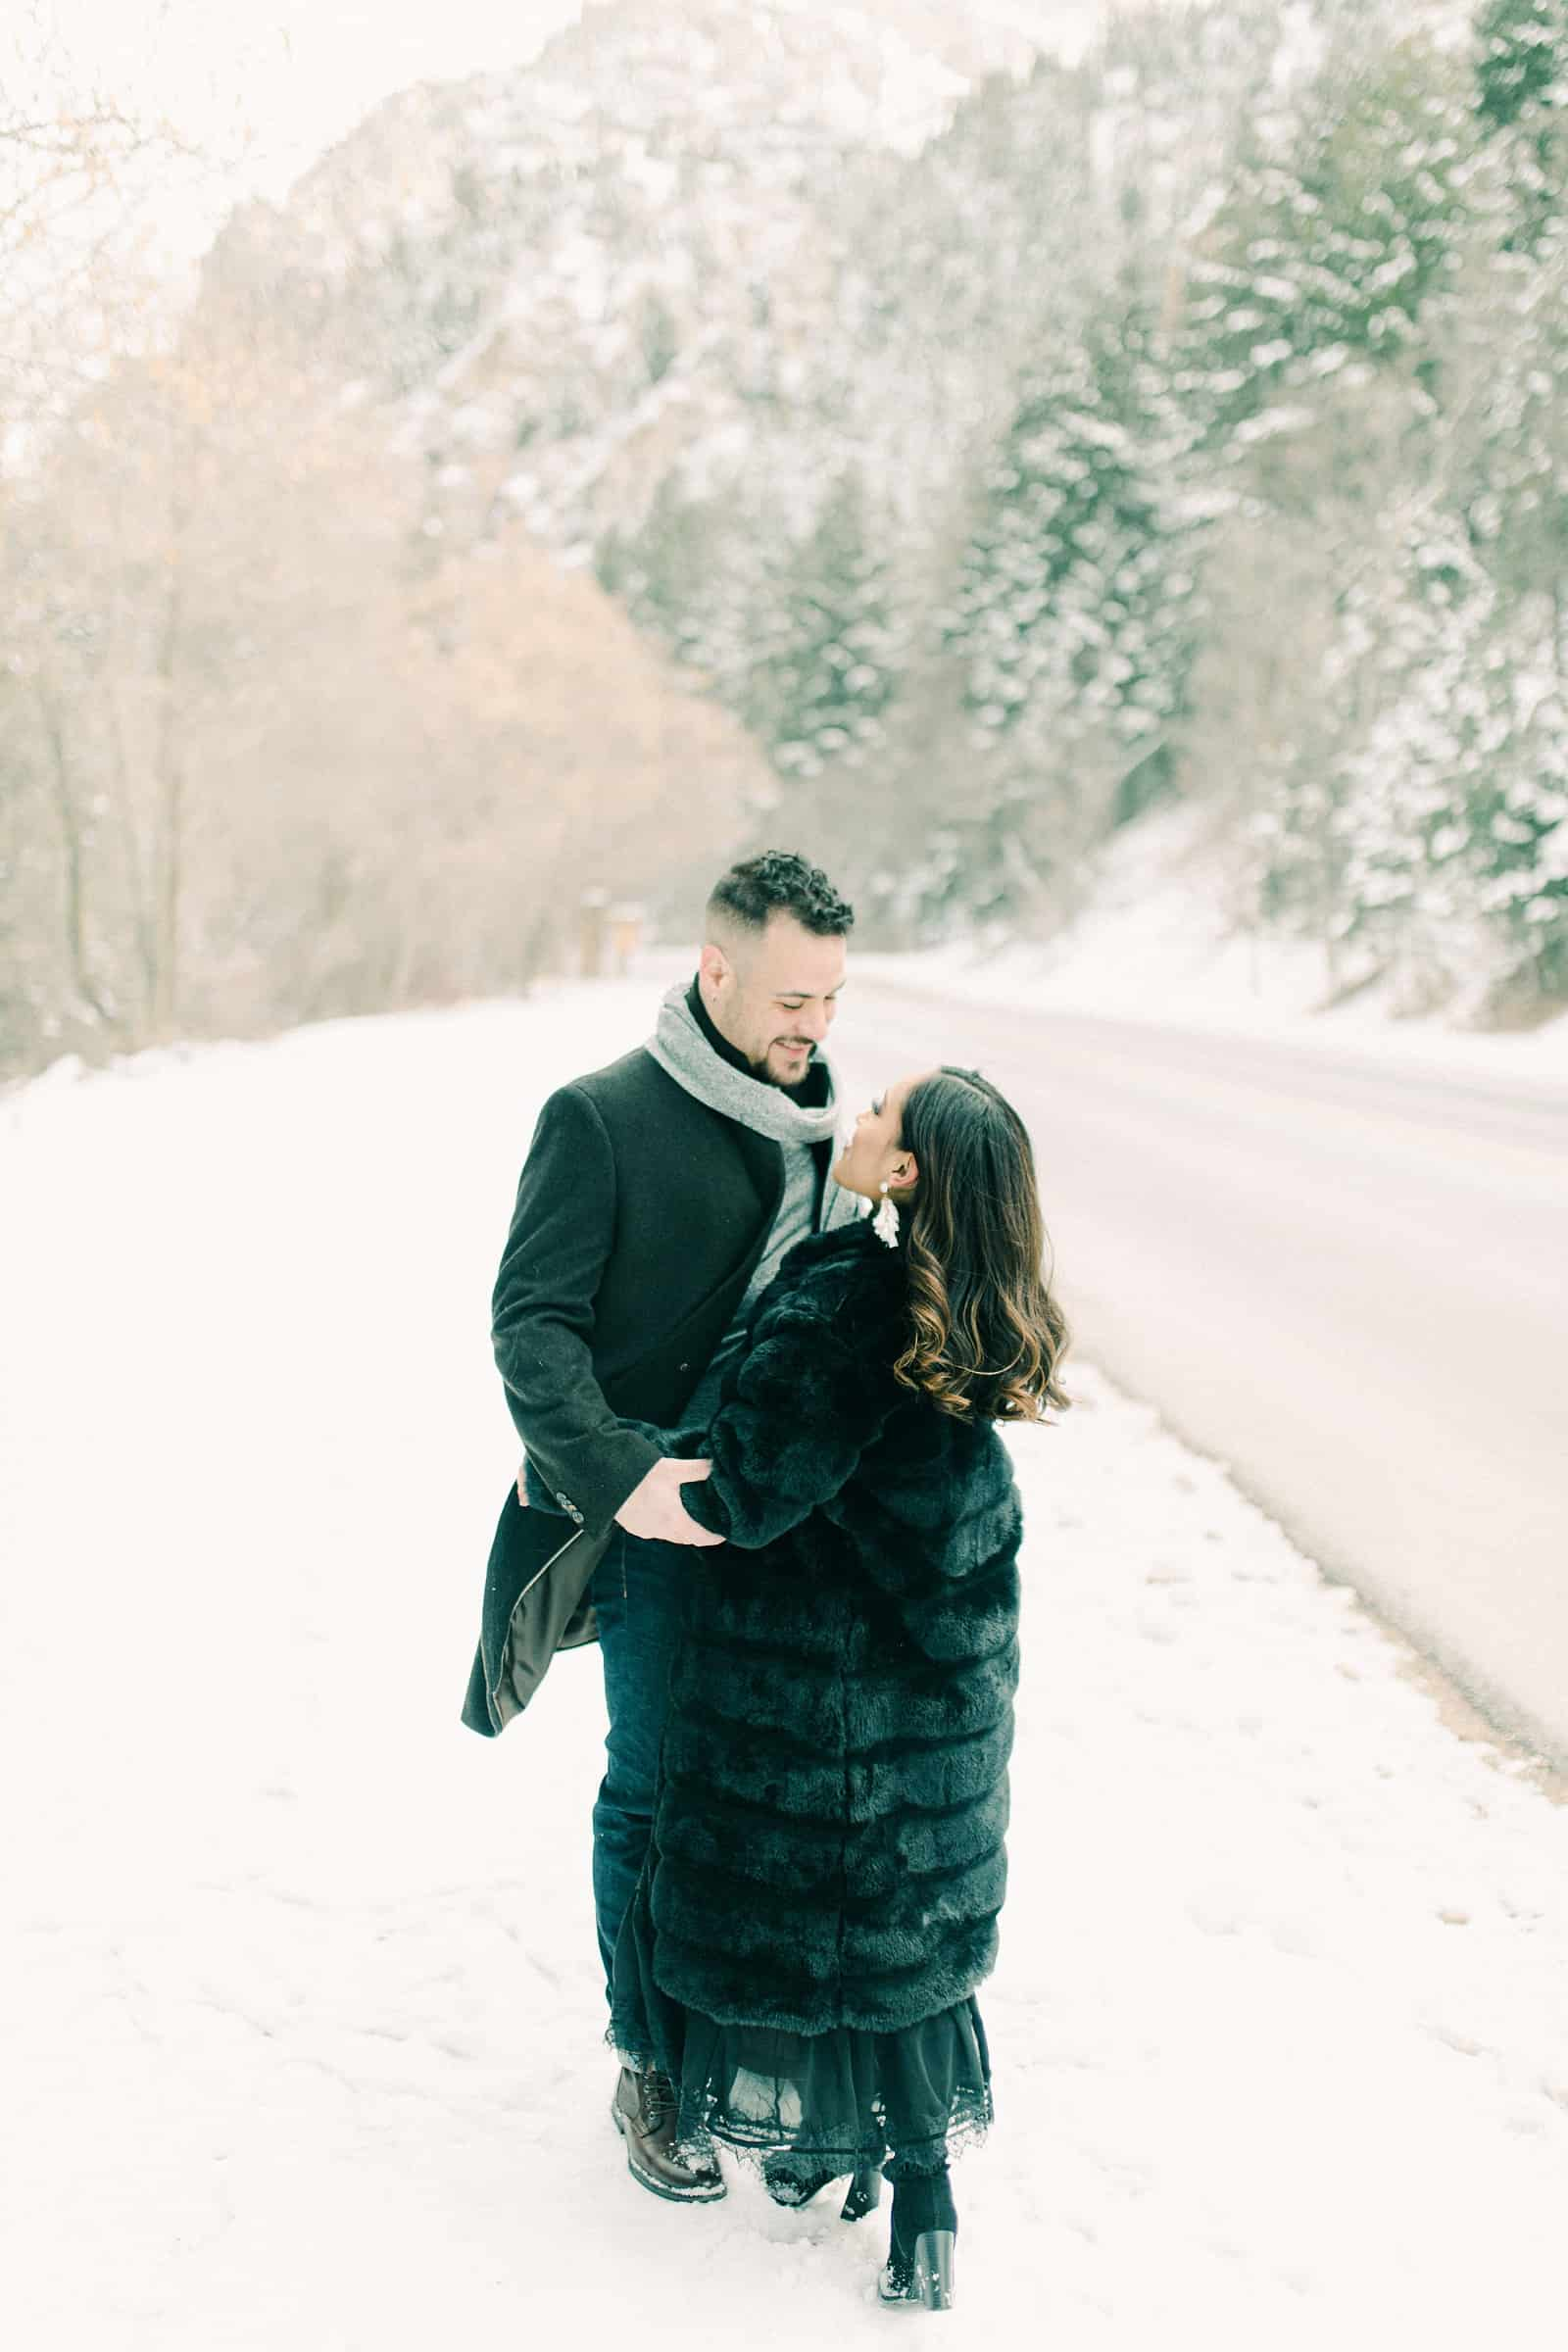 Winter engagement session outfits